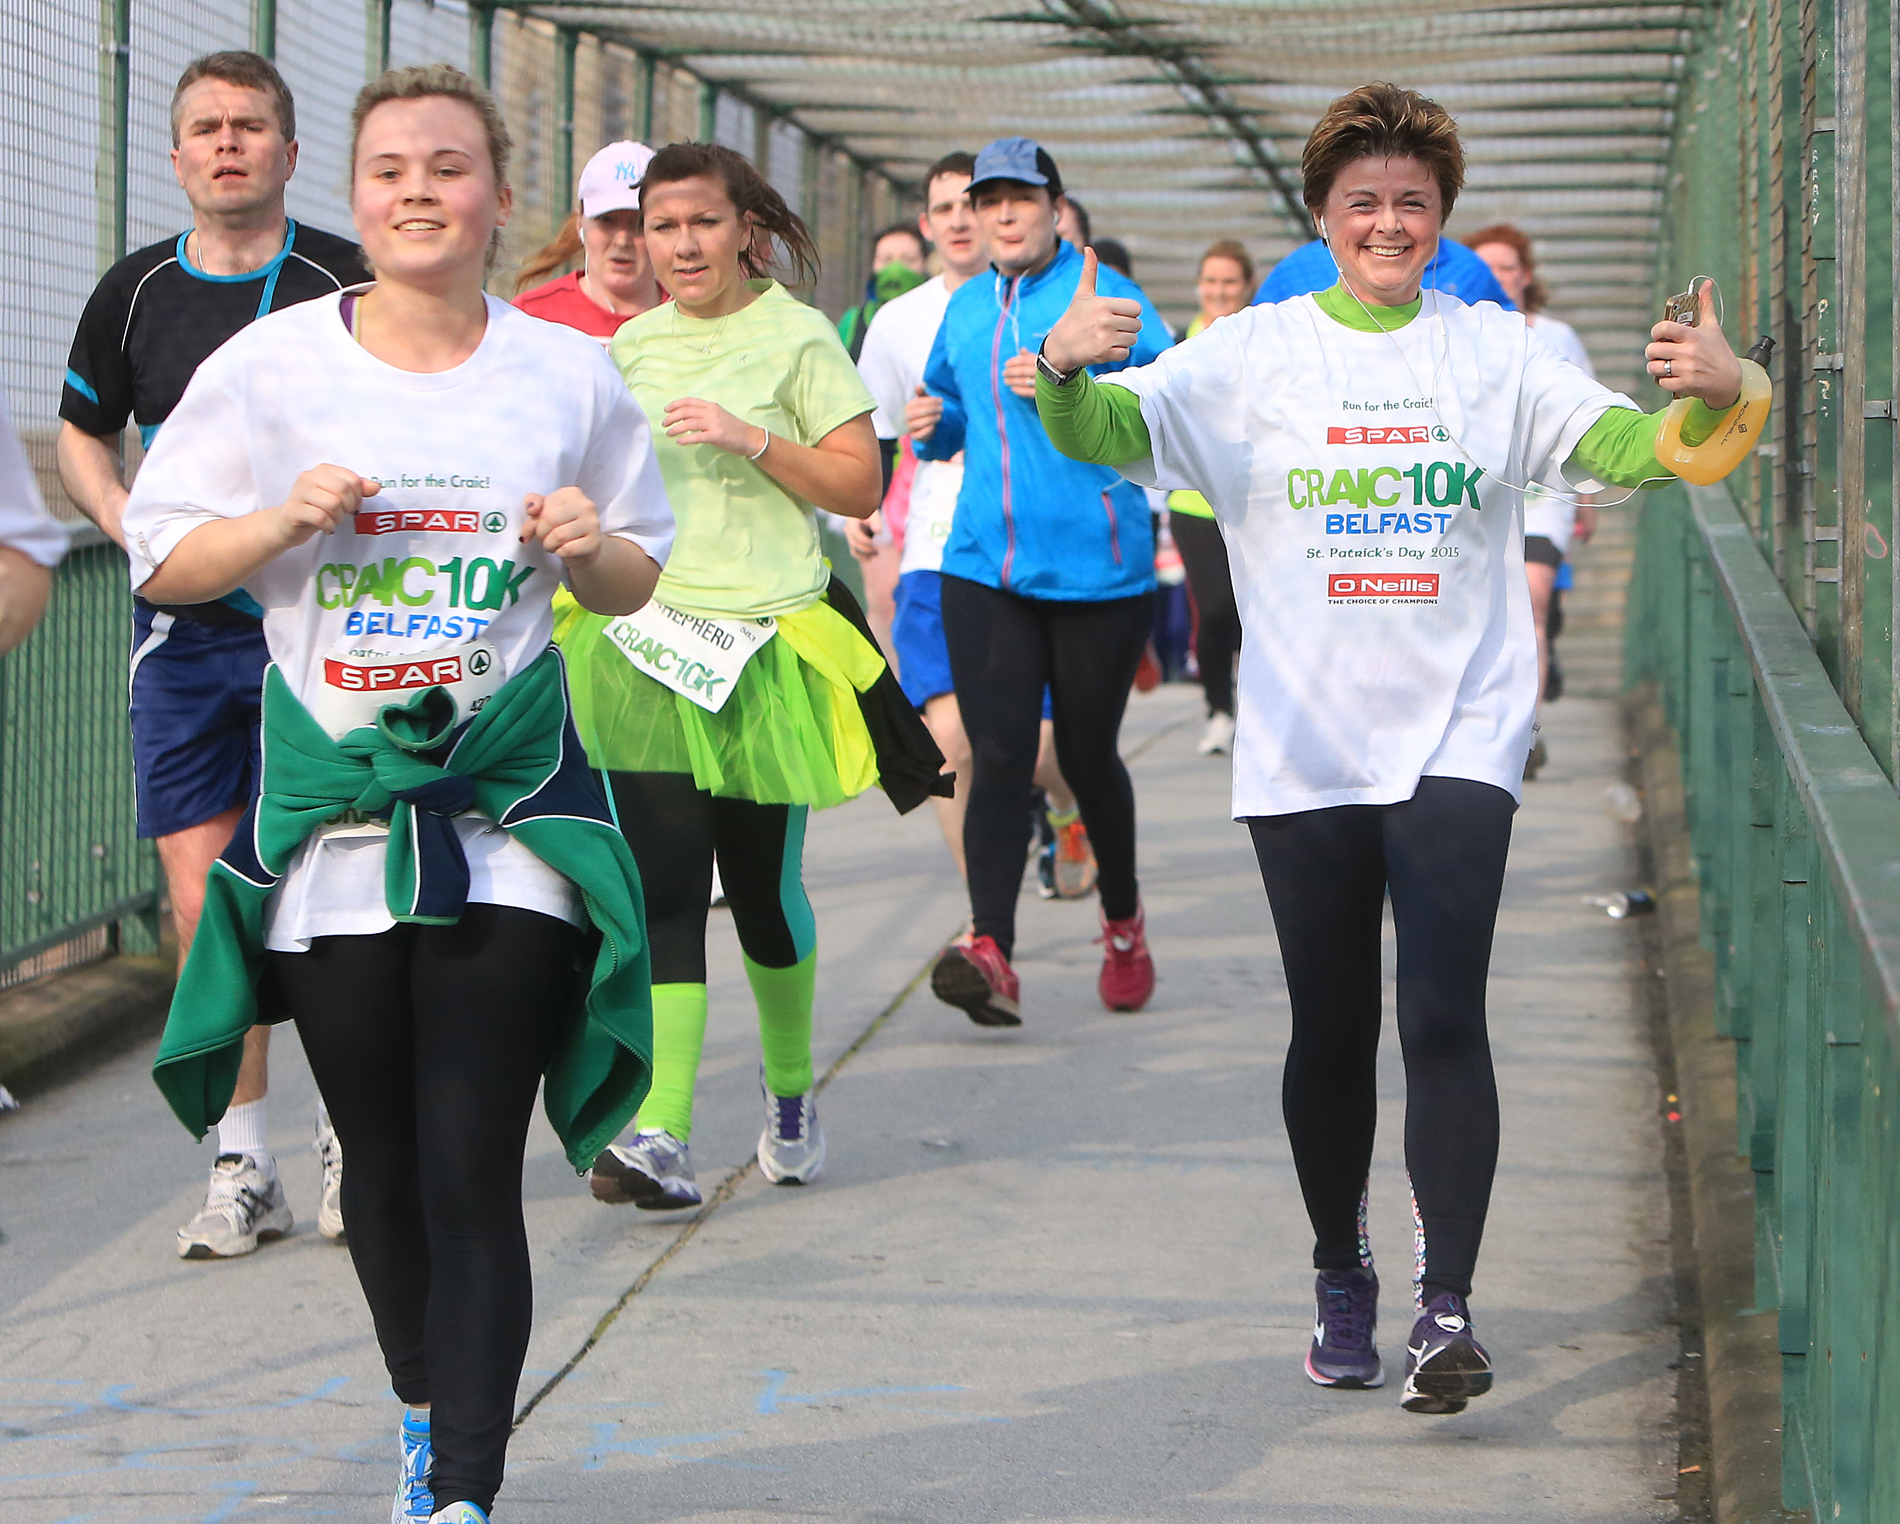 City Hall SPAR CRAIC 10K 1703JC15